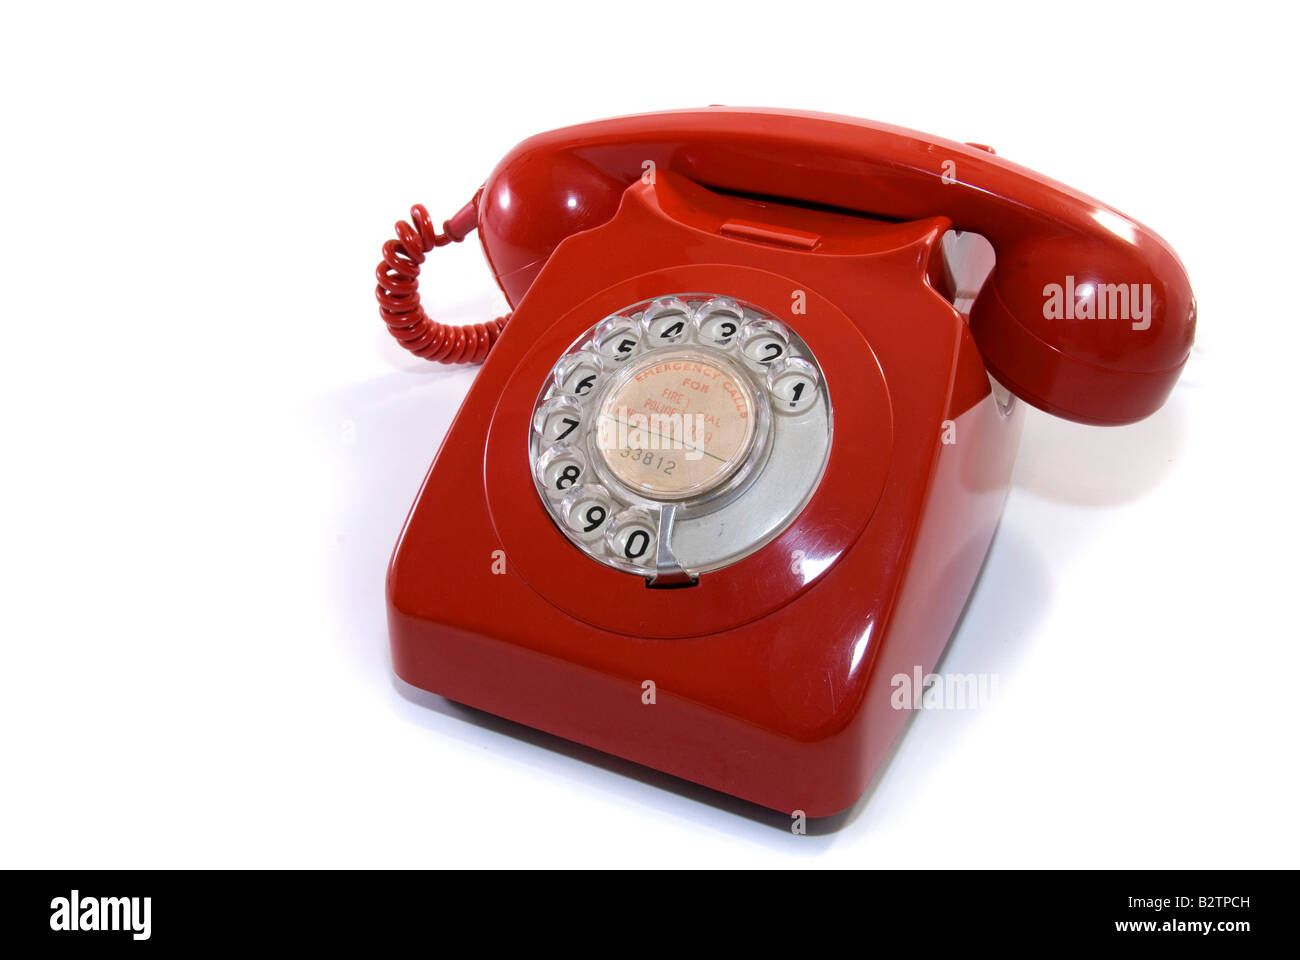 A Red retro telephone in isolation - Stock Image